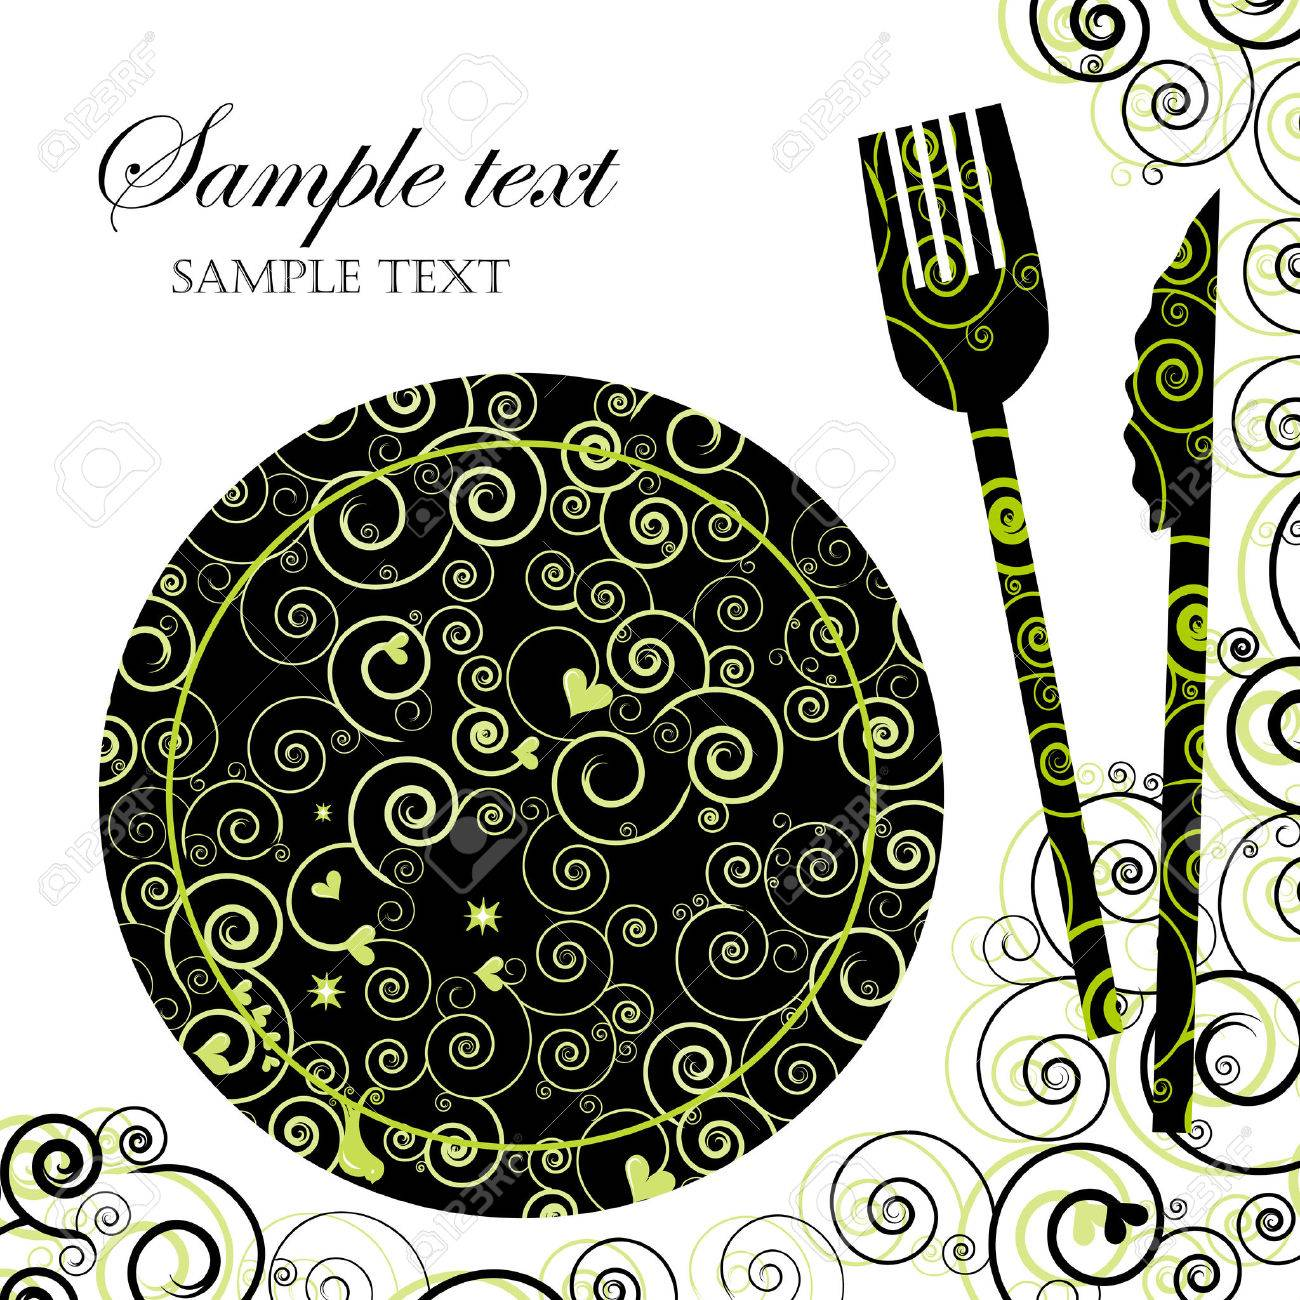 Menu Or Invitation For Dinner Parties And Showers Royalty Free – Free Dinner Invitation